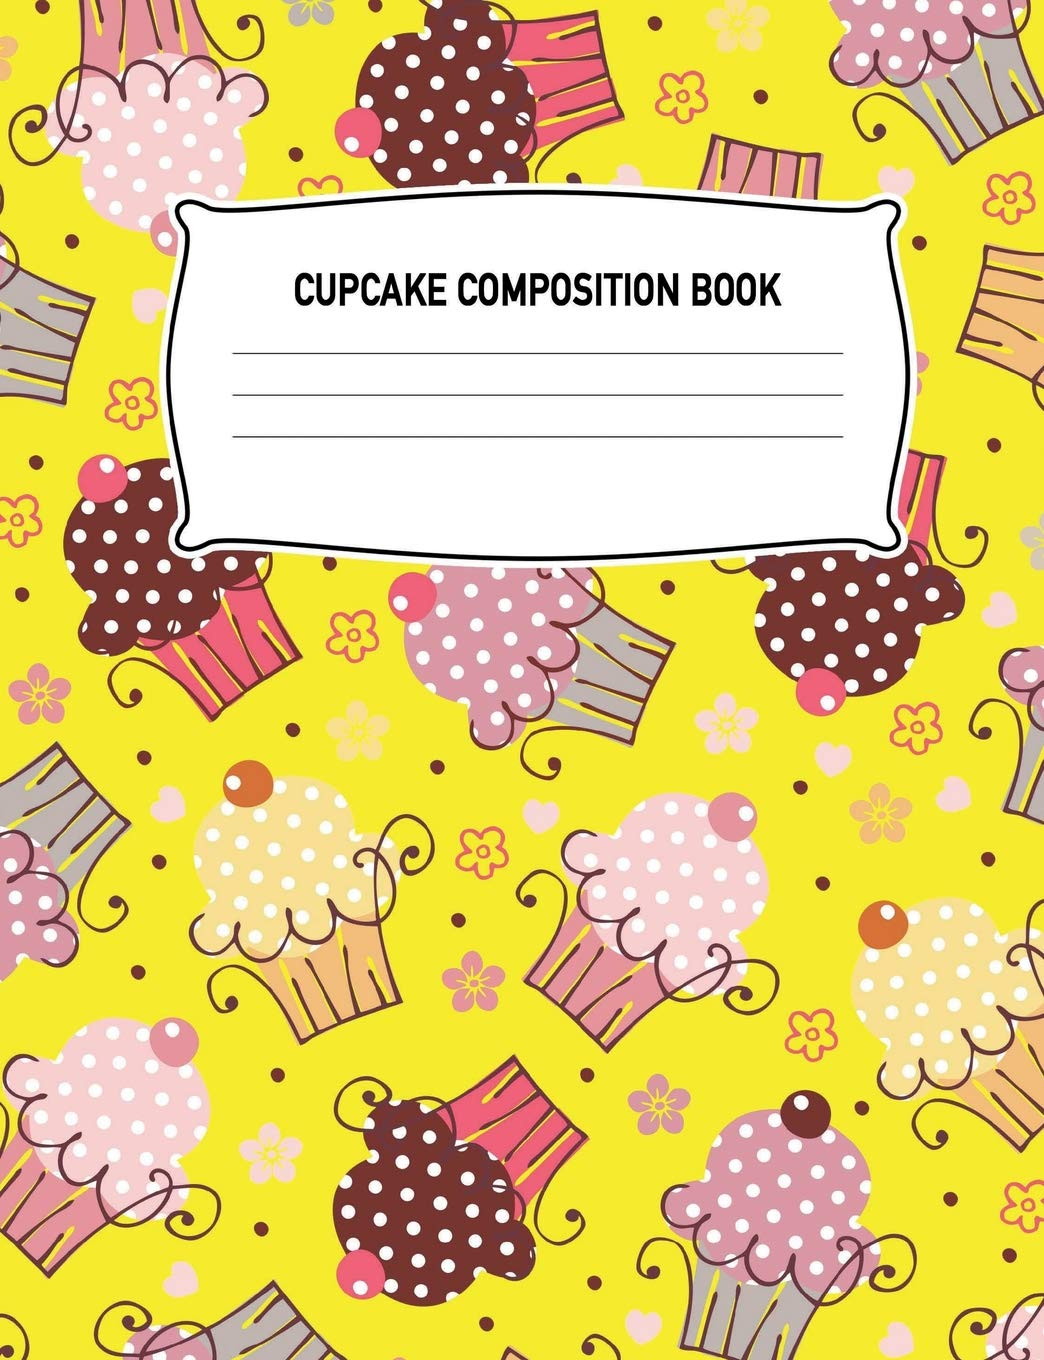 Read Online Cupcake Composition Book: Dessert Muffin Baking Yellow Notebook Wide Ruled Writing Diary Practice Journal Organizer: Youth, Kids, Preschool, ... Notepad Lined Paper, 100 Pages, 50 Sheets PDF